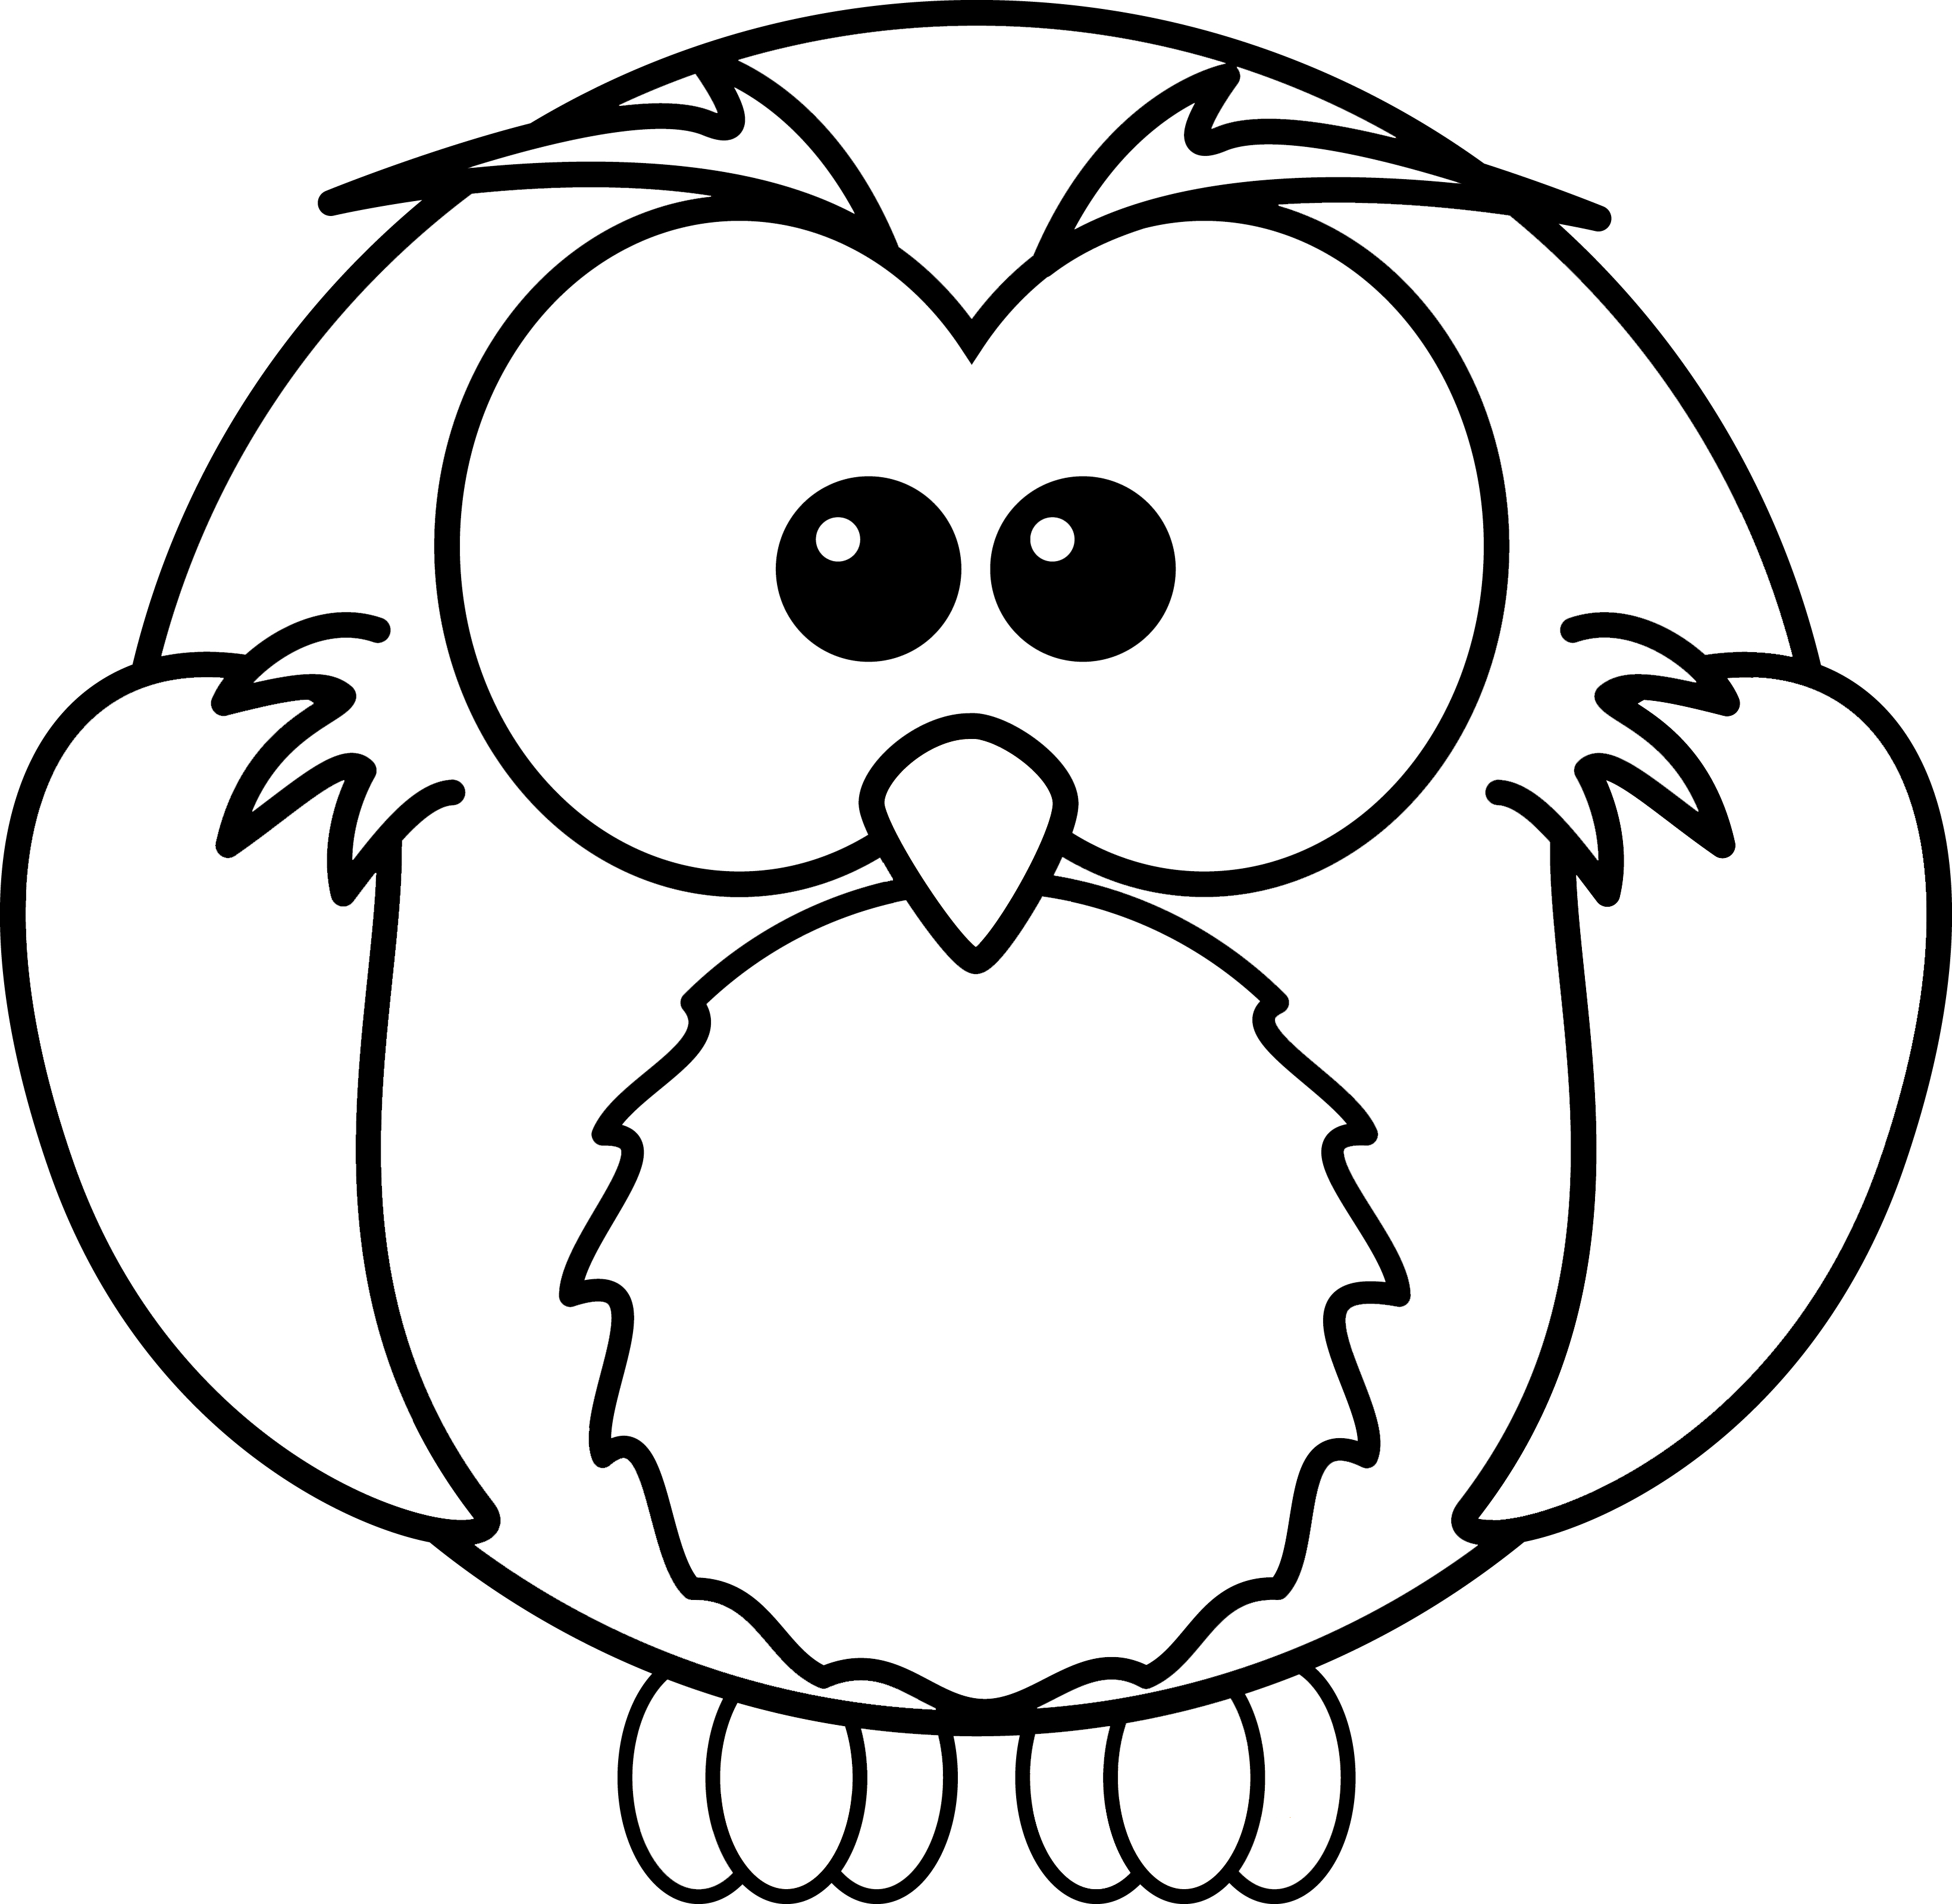 3281x3200 Free Printable Owl Coloring Pages For Kids